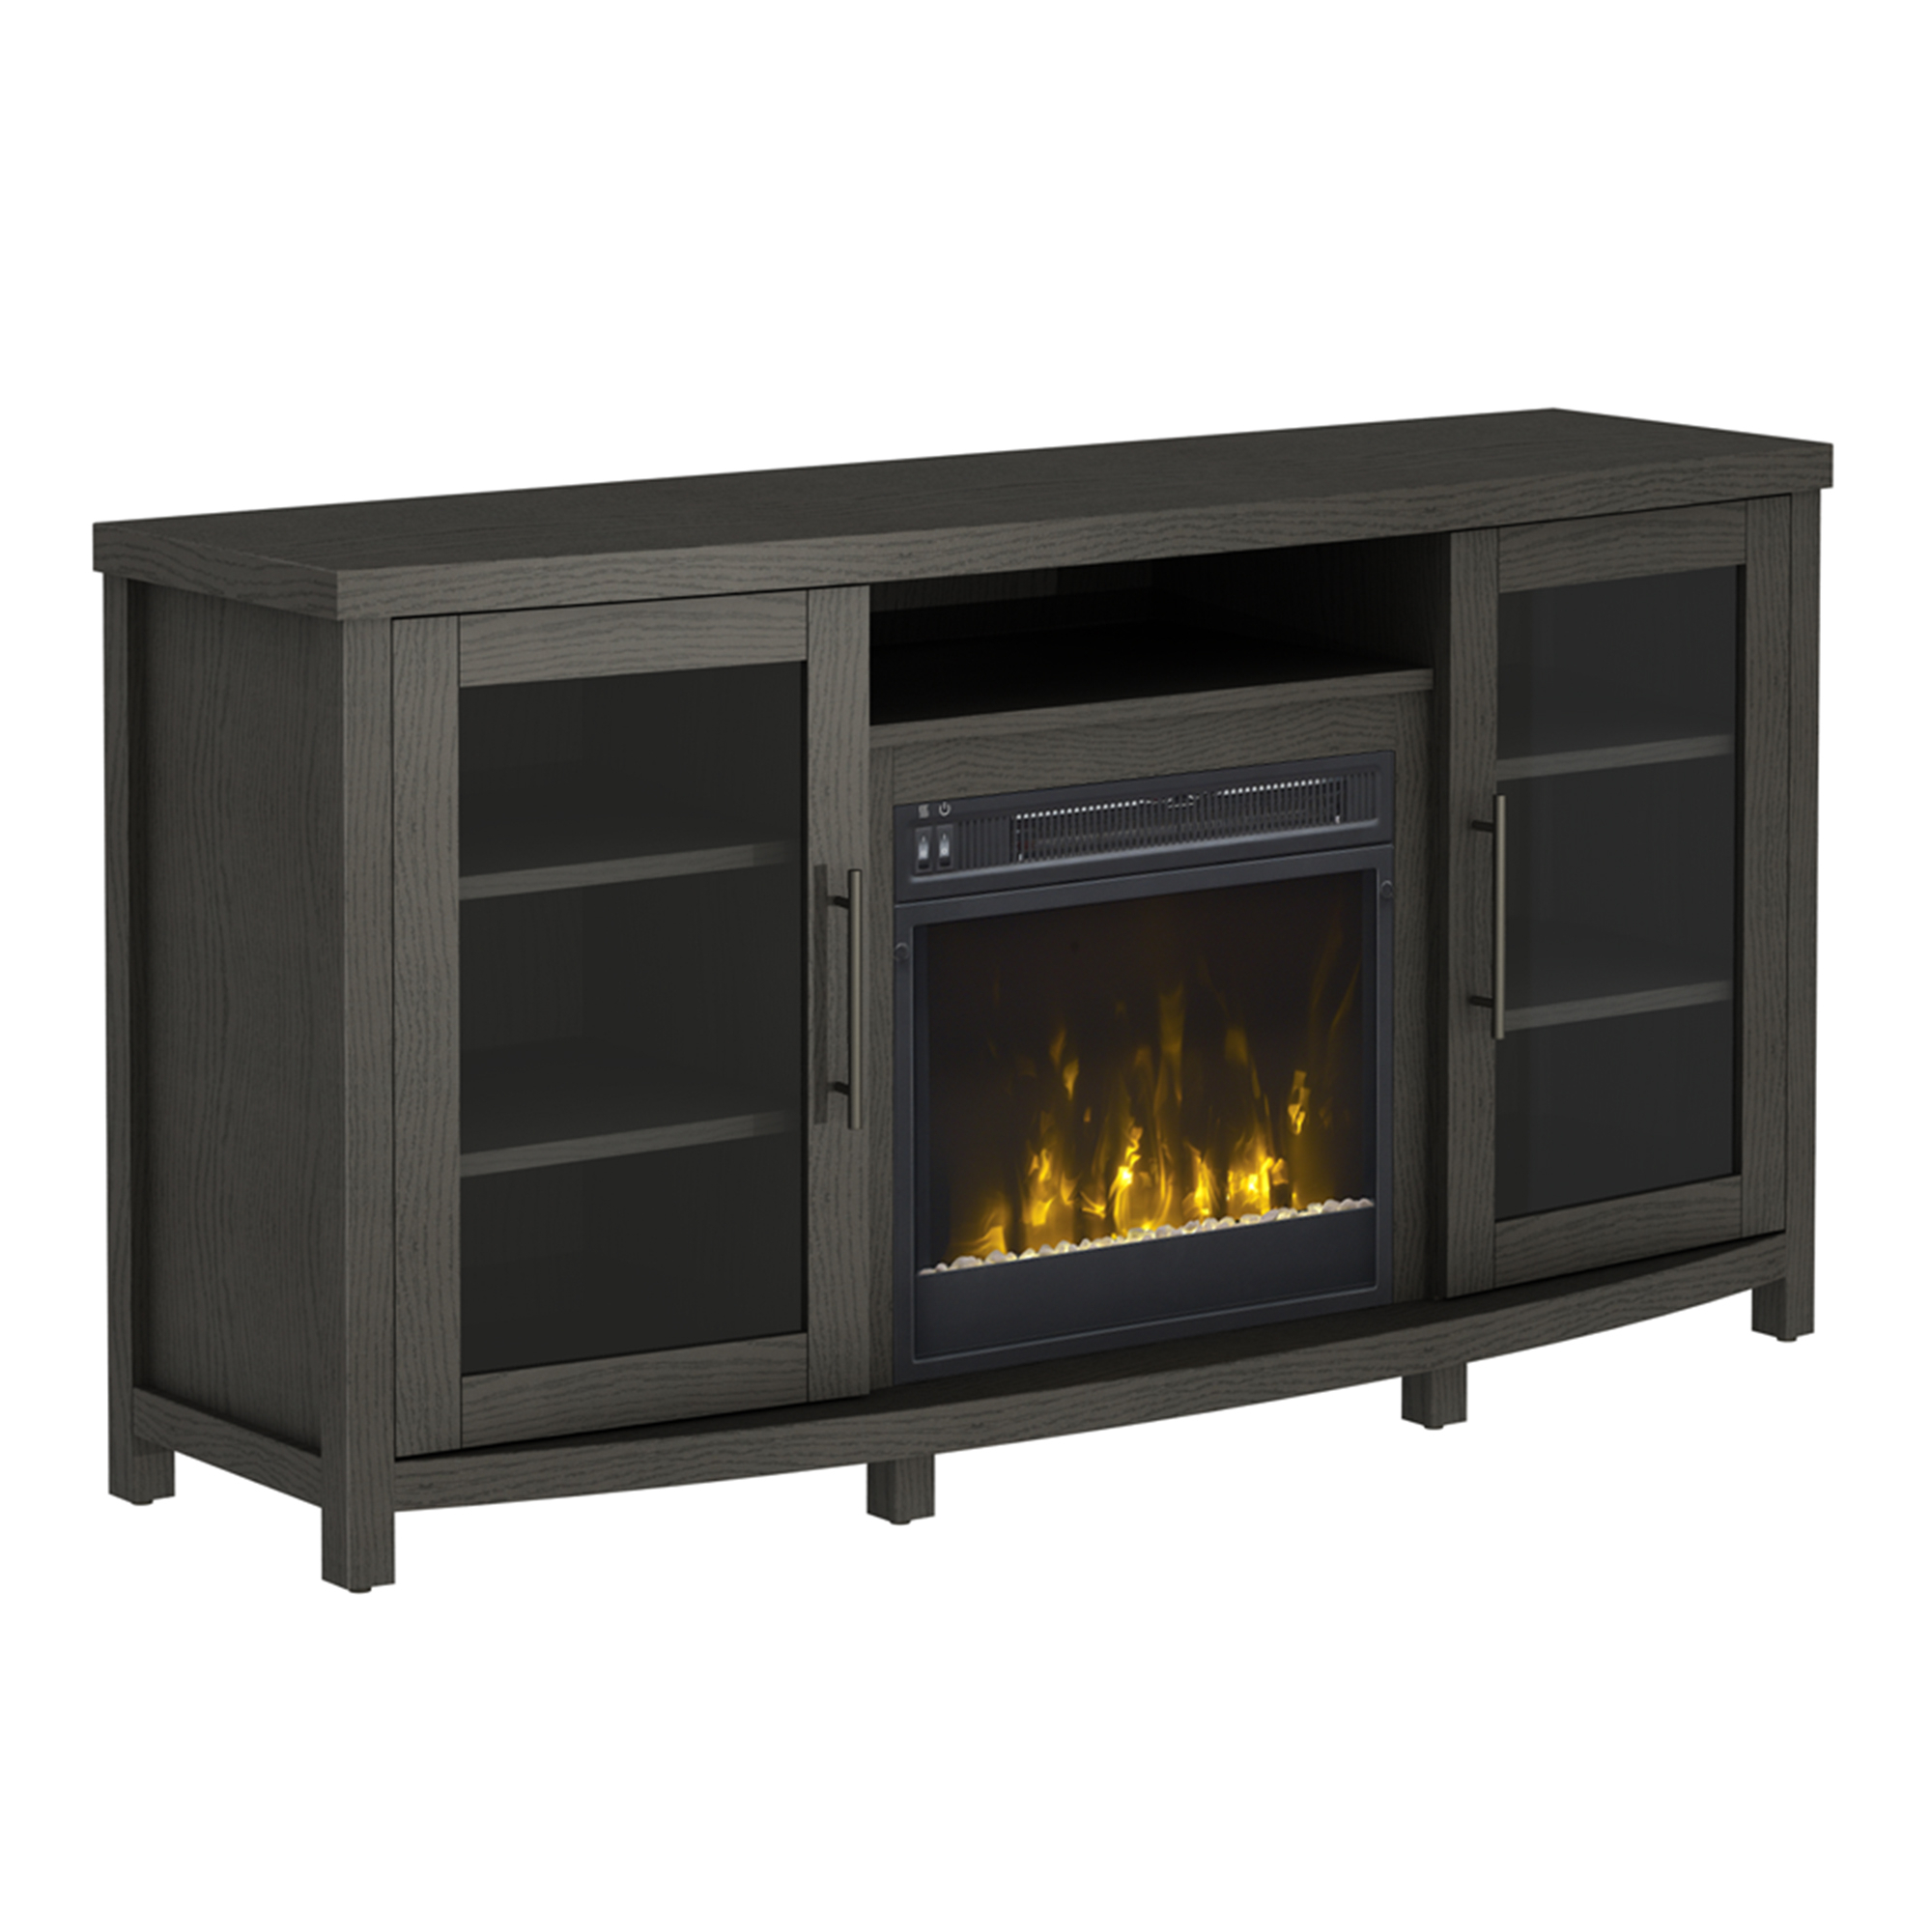 """Rossville Tv Stand For Tvs Up To 60 With Electric Fireplace Within Hal Tv Stands For Tvs Up To 60"""" (View 12 of 20)"""